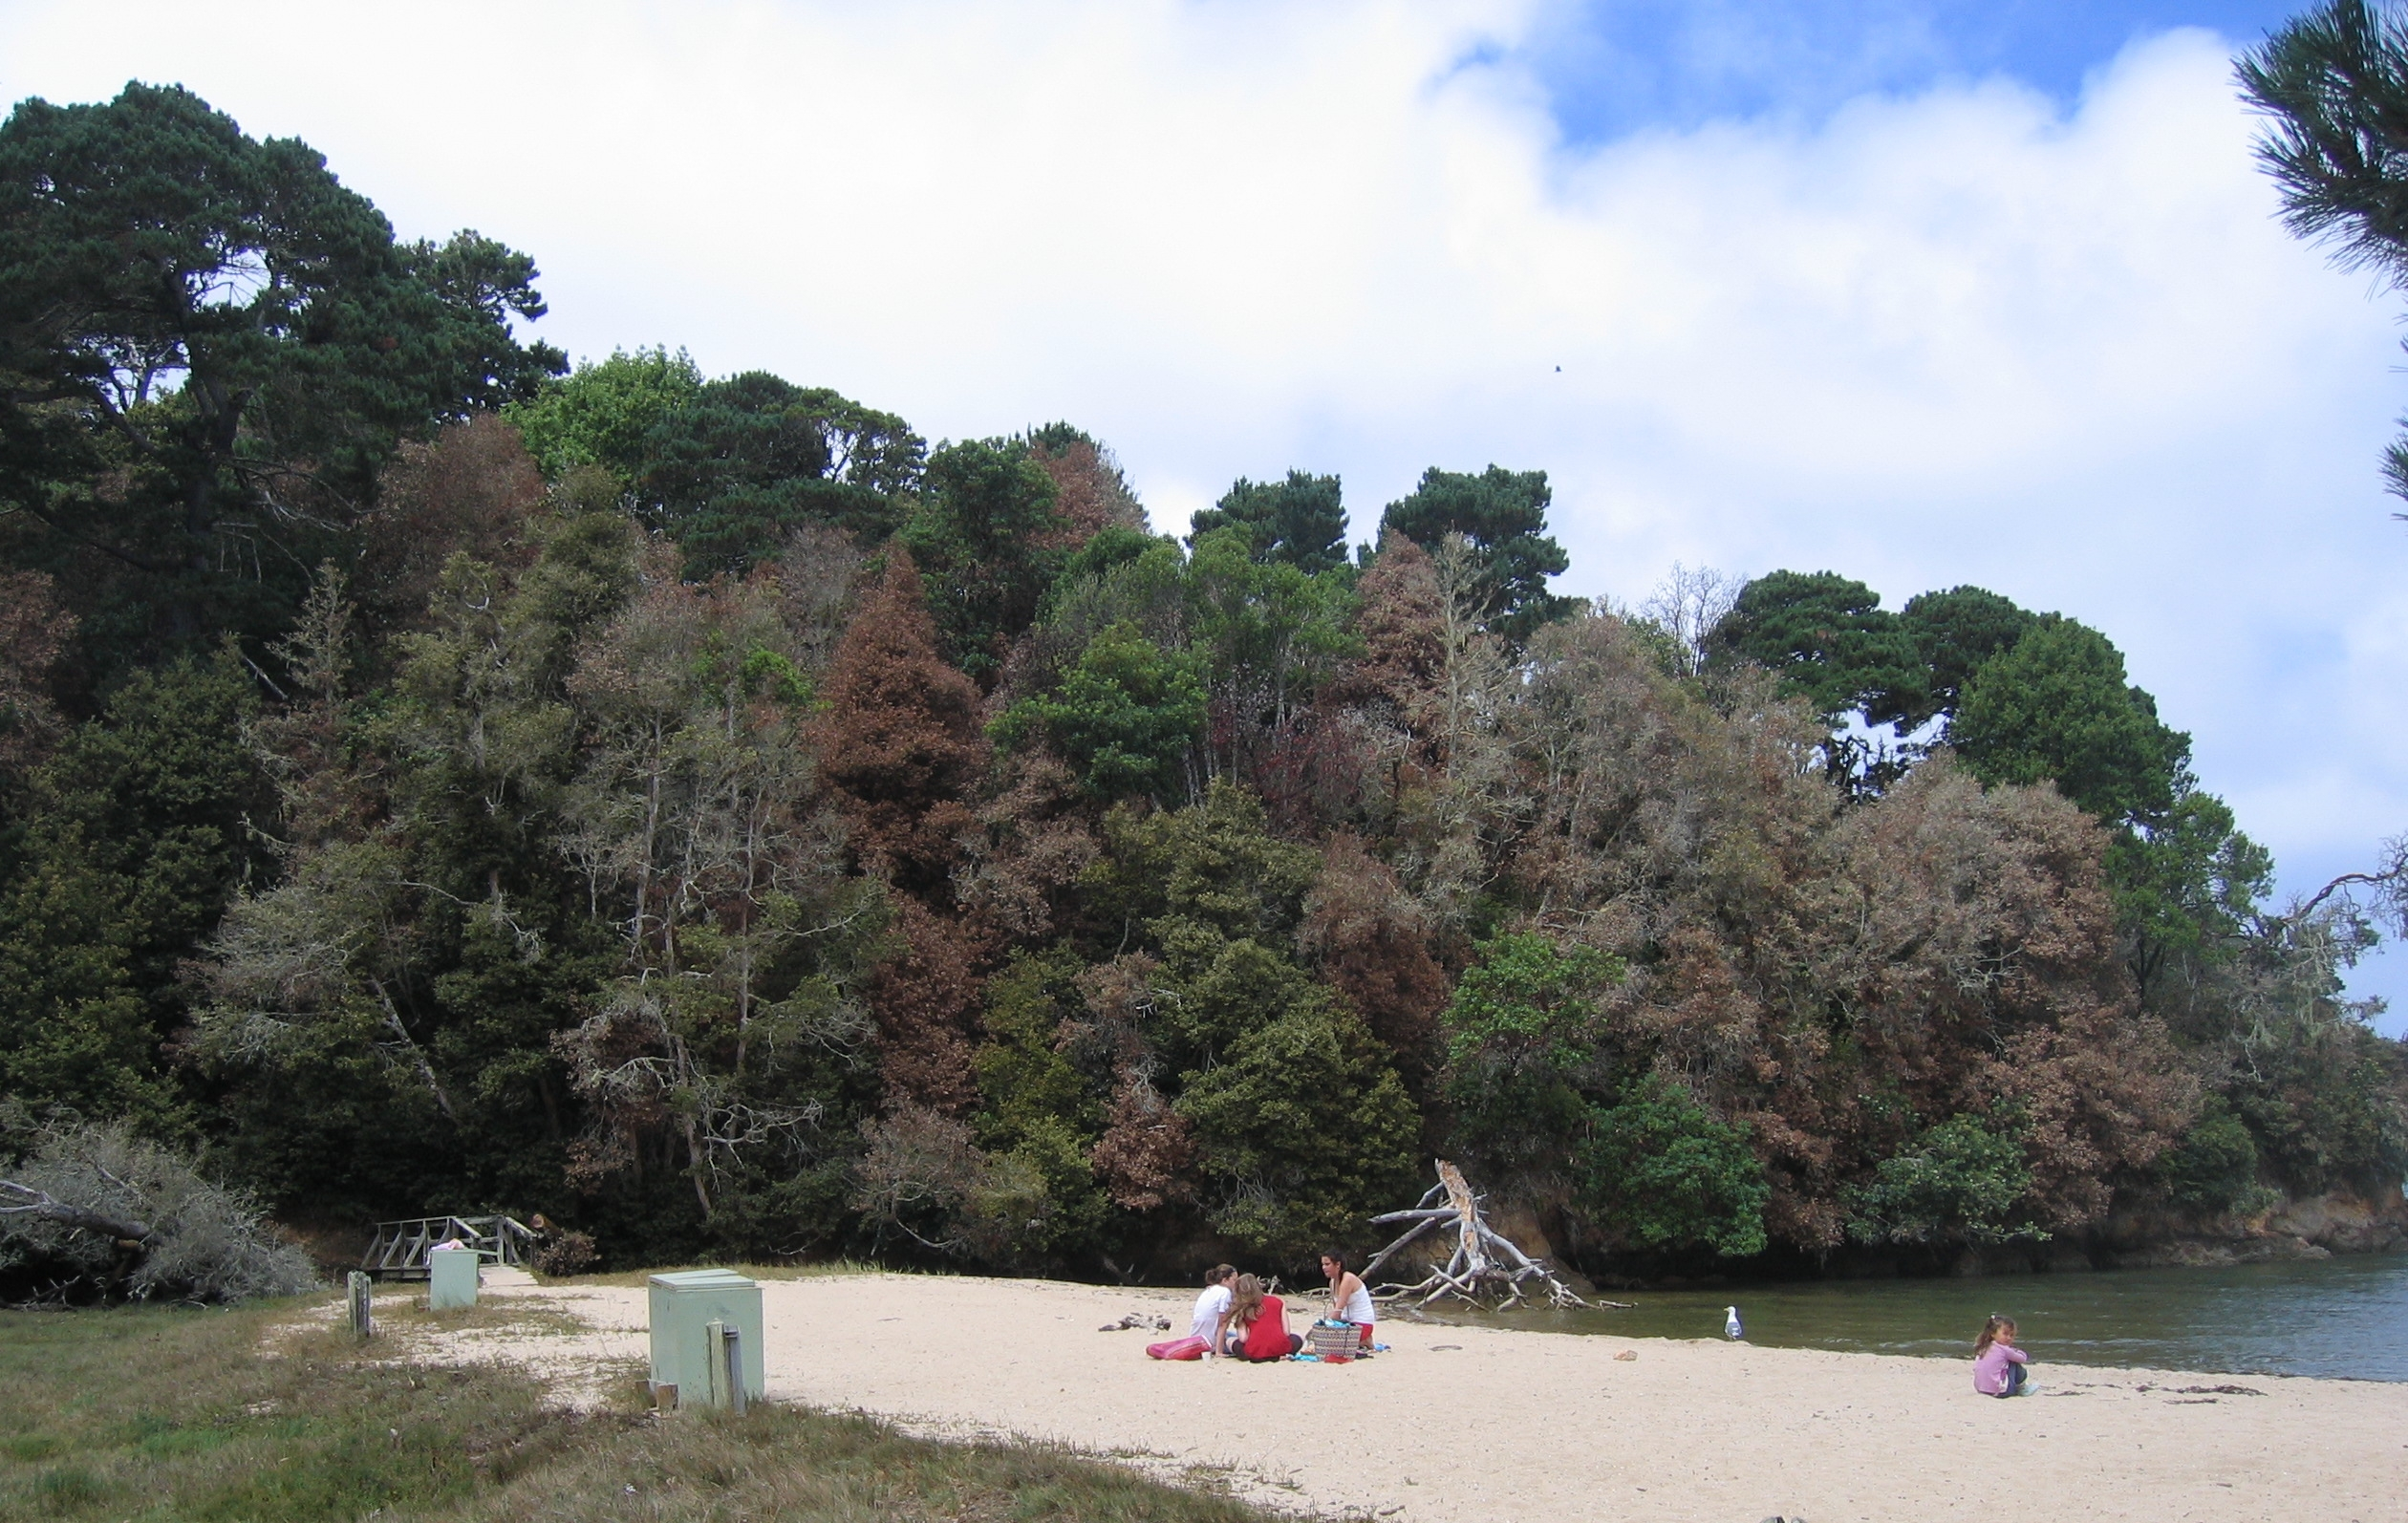 At Shelley Beach, a few miles North of San Francisco, tanoaks and oaks, the most sacred trees to native people of the Northern California coast, have been decimated due to the exotic disease known as Sudden Oak Death (SOD). SOD is thus not only changing the landscape dynamics but also profoundly altering the local culture. (Photo by Matteo Garbelotto)